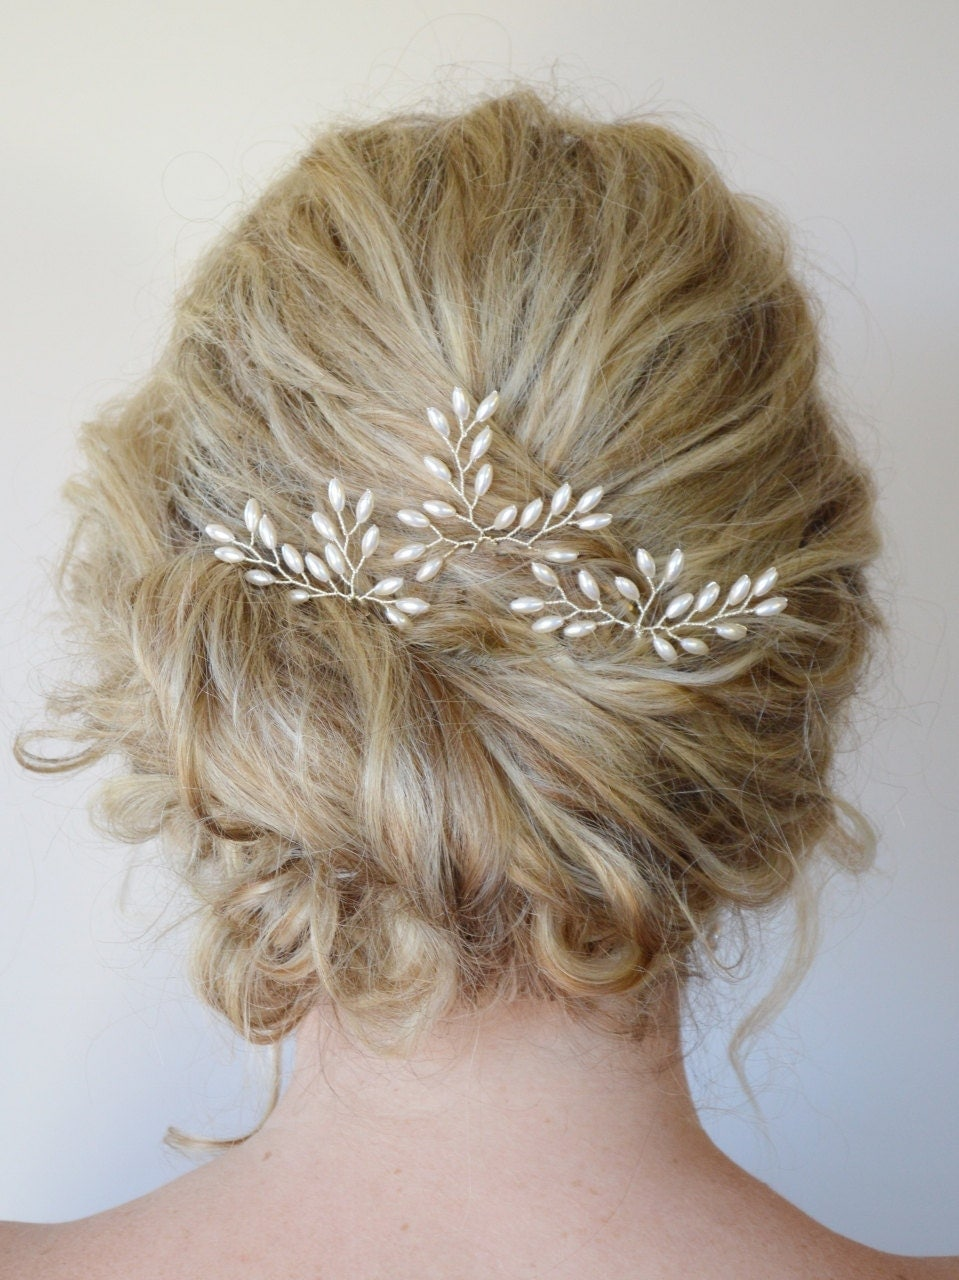 Bridal Hair With Pins : Wedding hair accessories bridal rice pearl